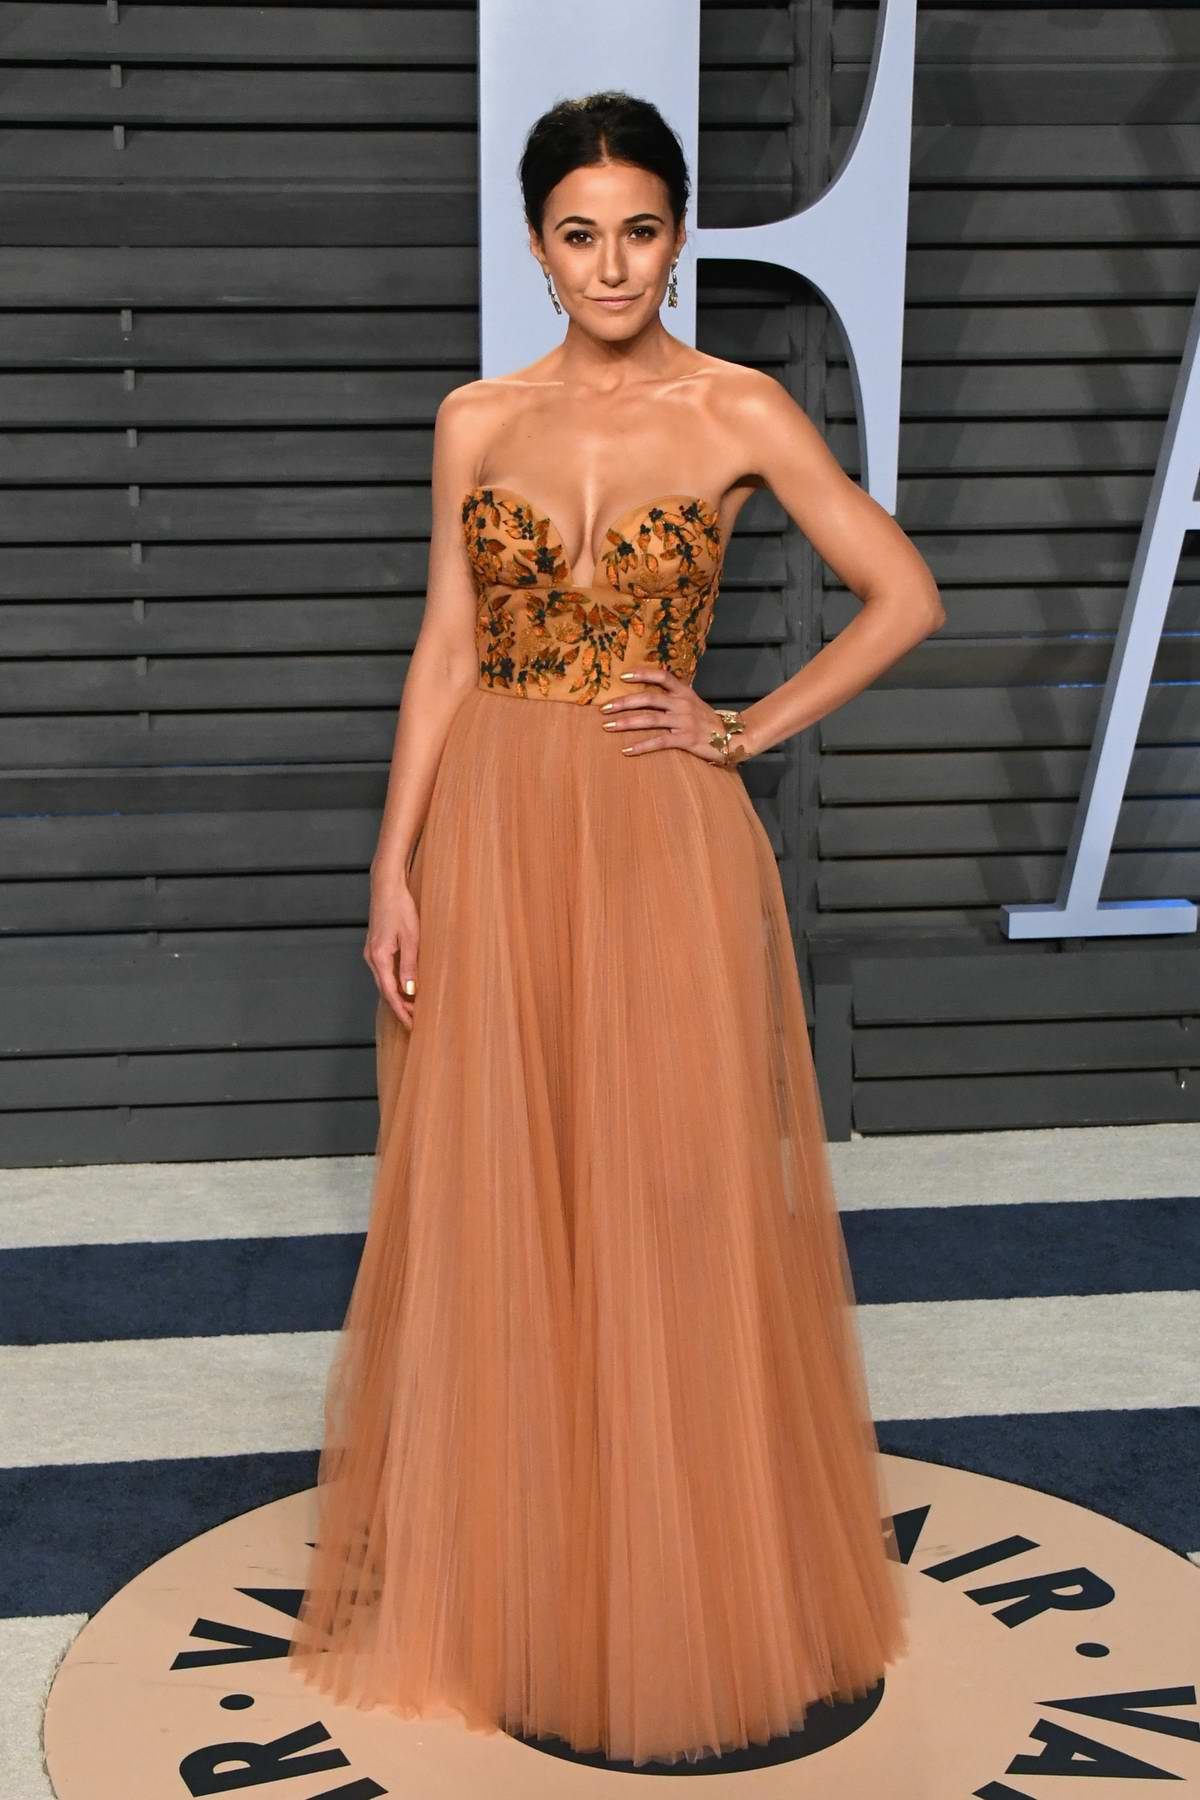 Emmanuelle Chriqui attends 2018 Vanity Fair Oscar Party at the Wallis Annenberg Center for the Performing Arts in Beverly Hills, Los Angeles